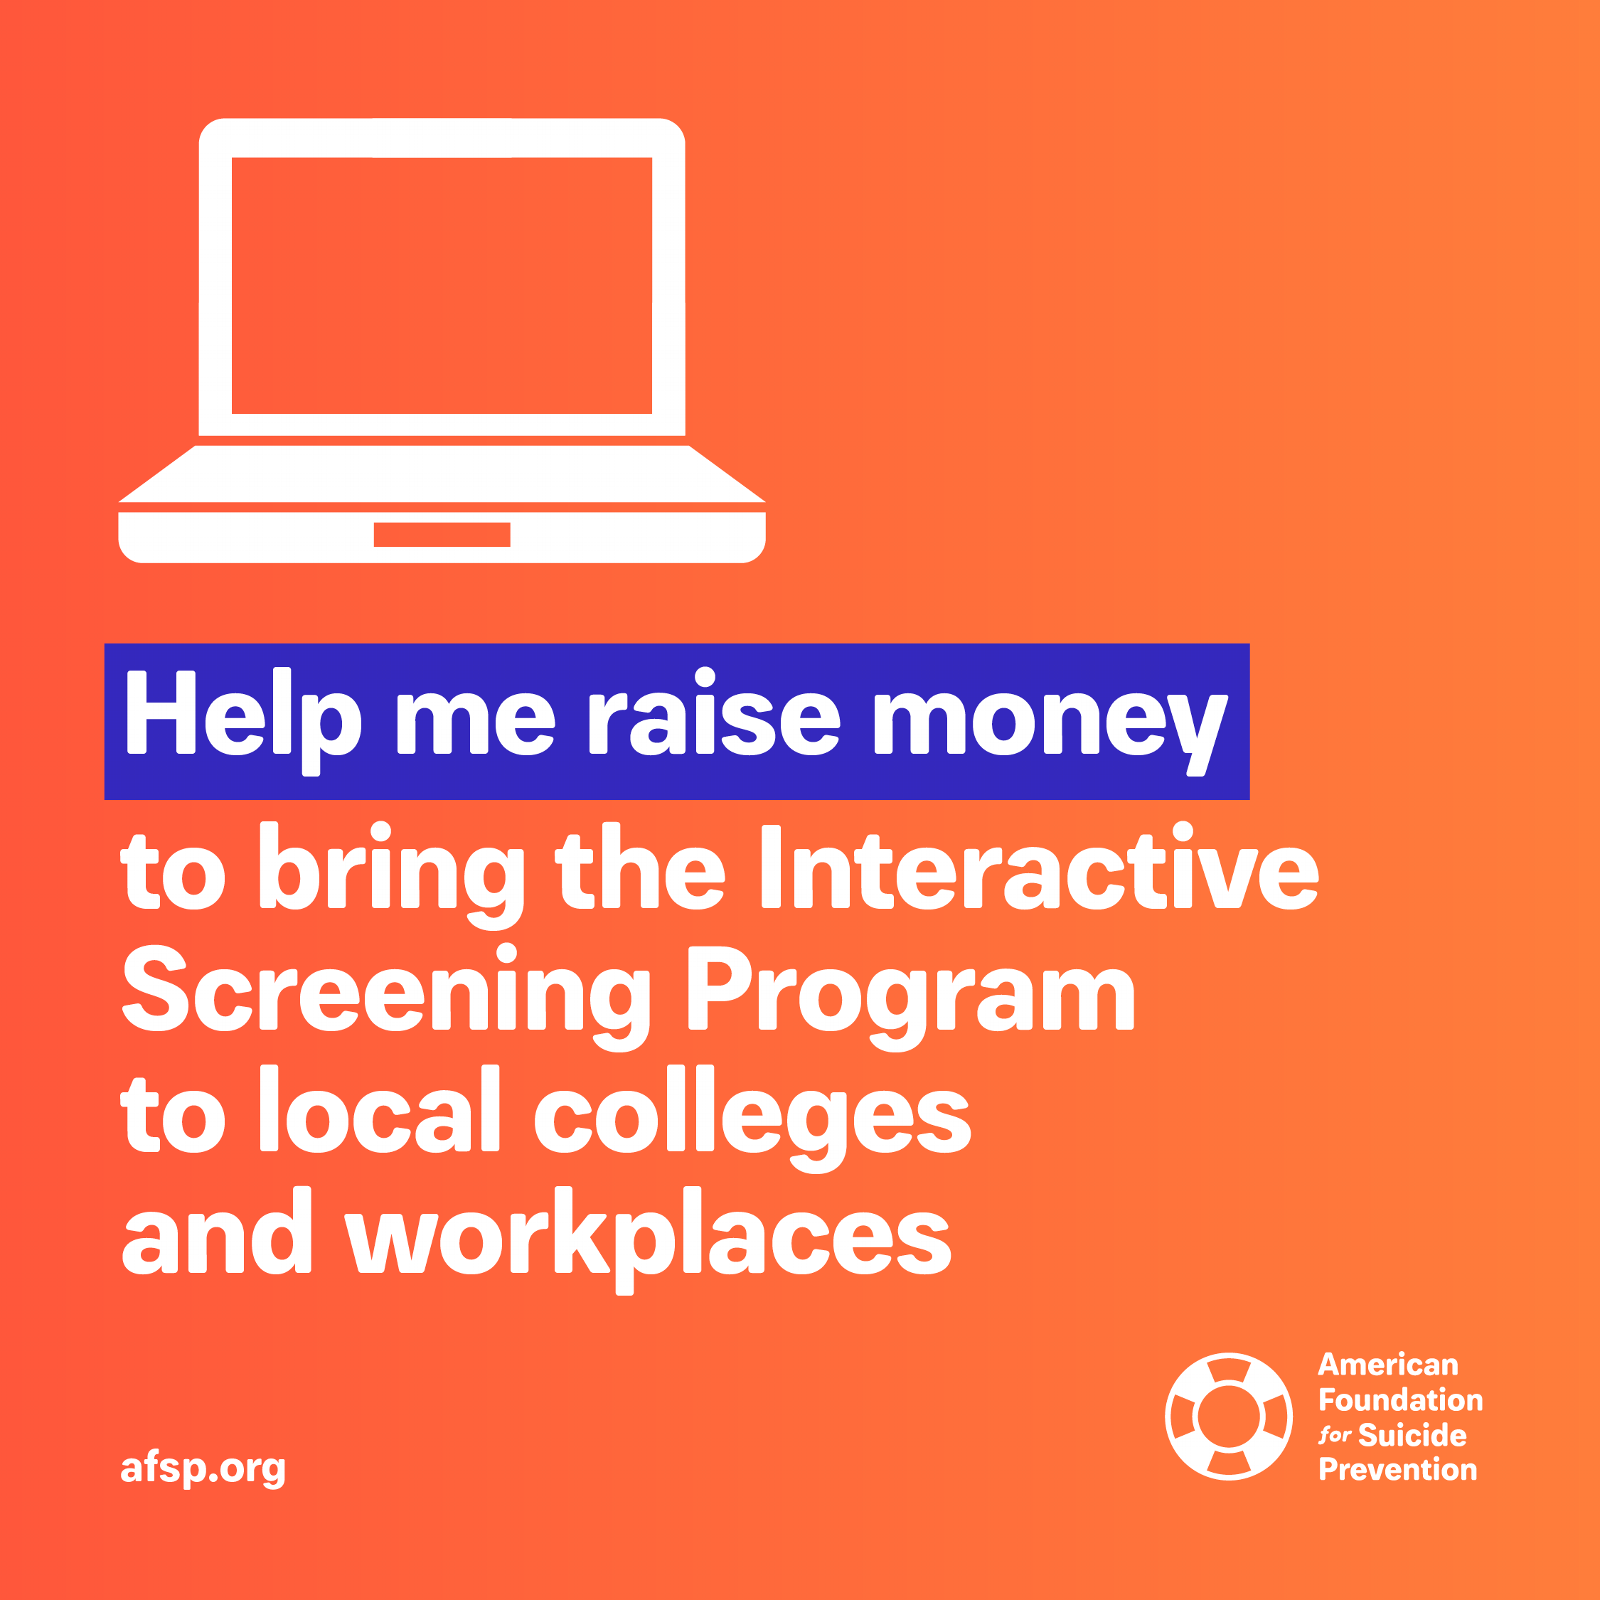 Help me raise money to bring the Interactive Screening Program (ISP) to local colleges and workplaces